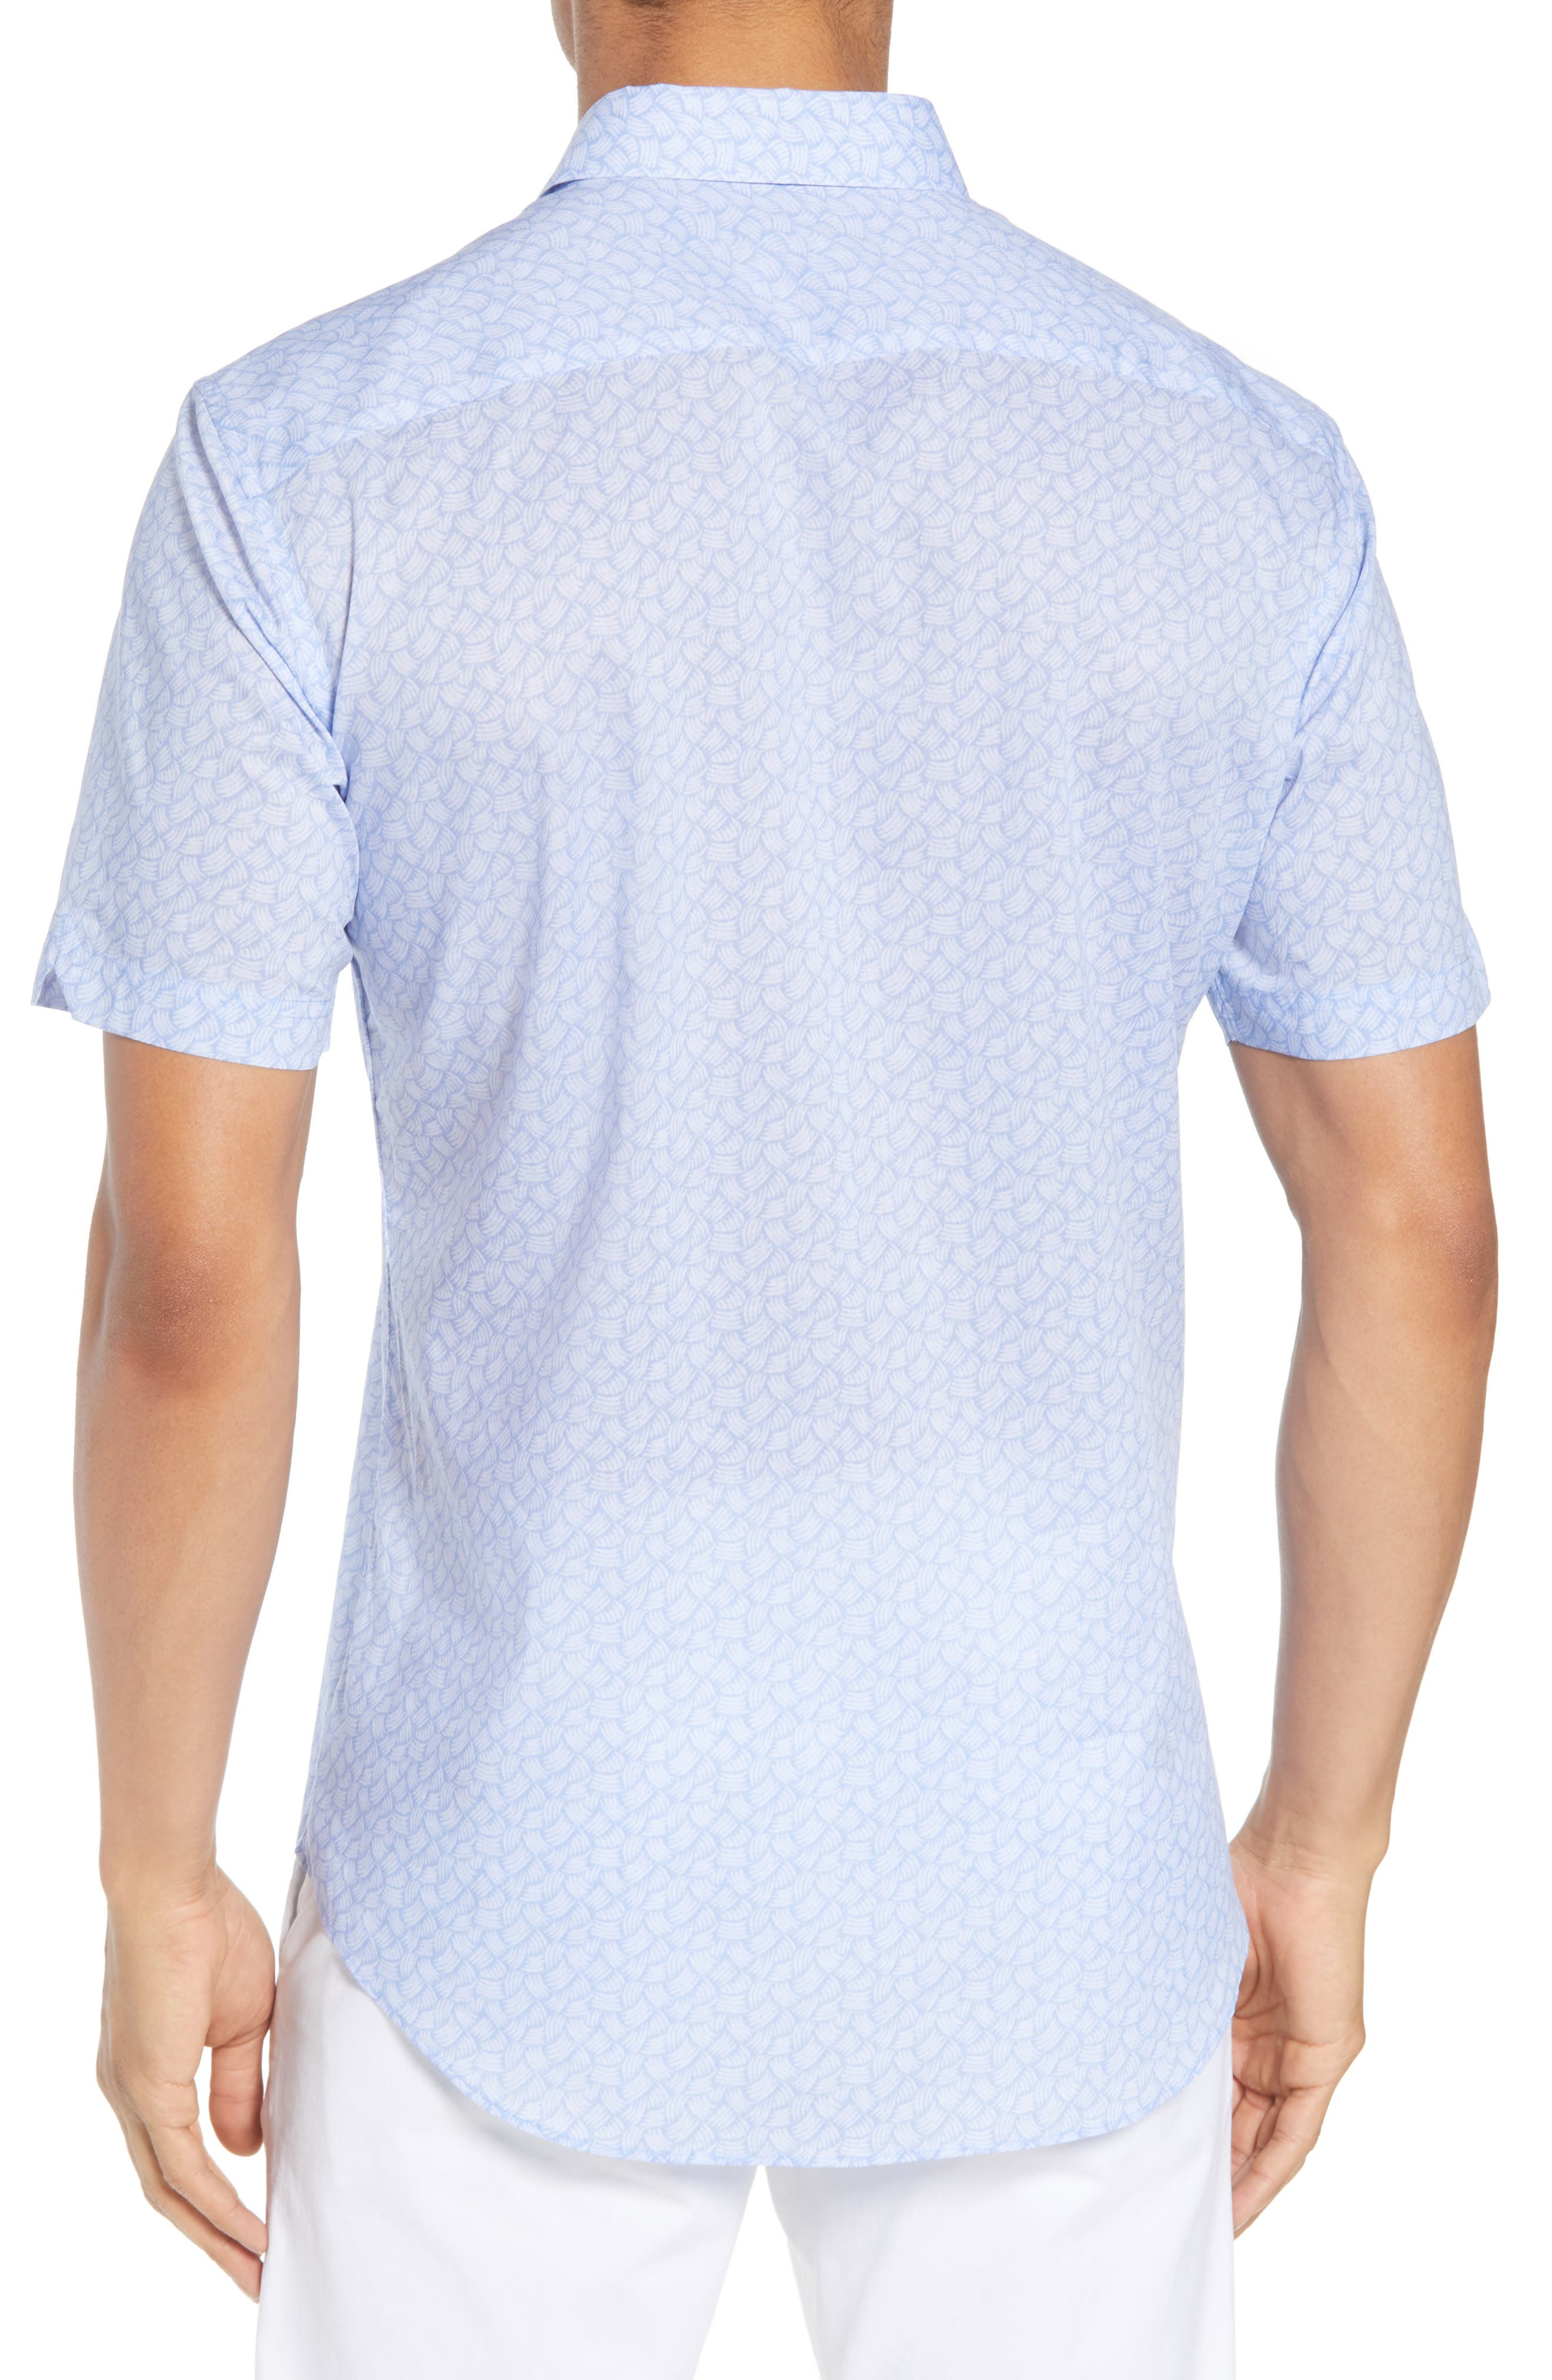 Garrett Trim Fit Sport Shirt,                             Alternate thumbnail 2, color,                             BLUE